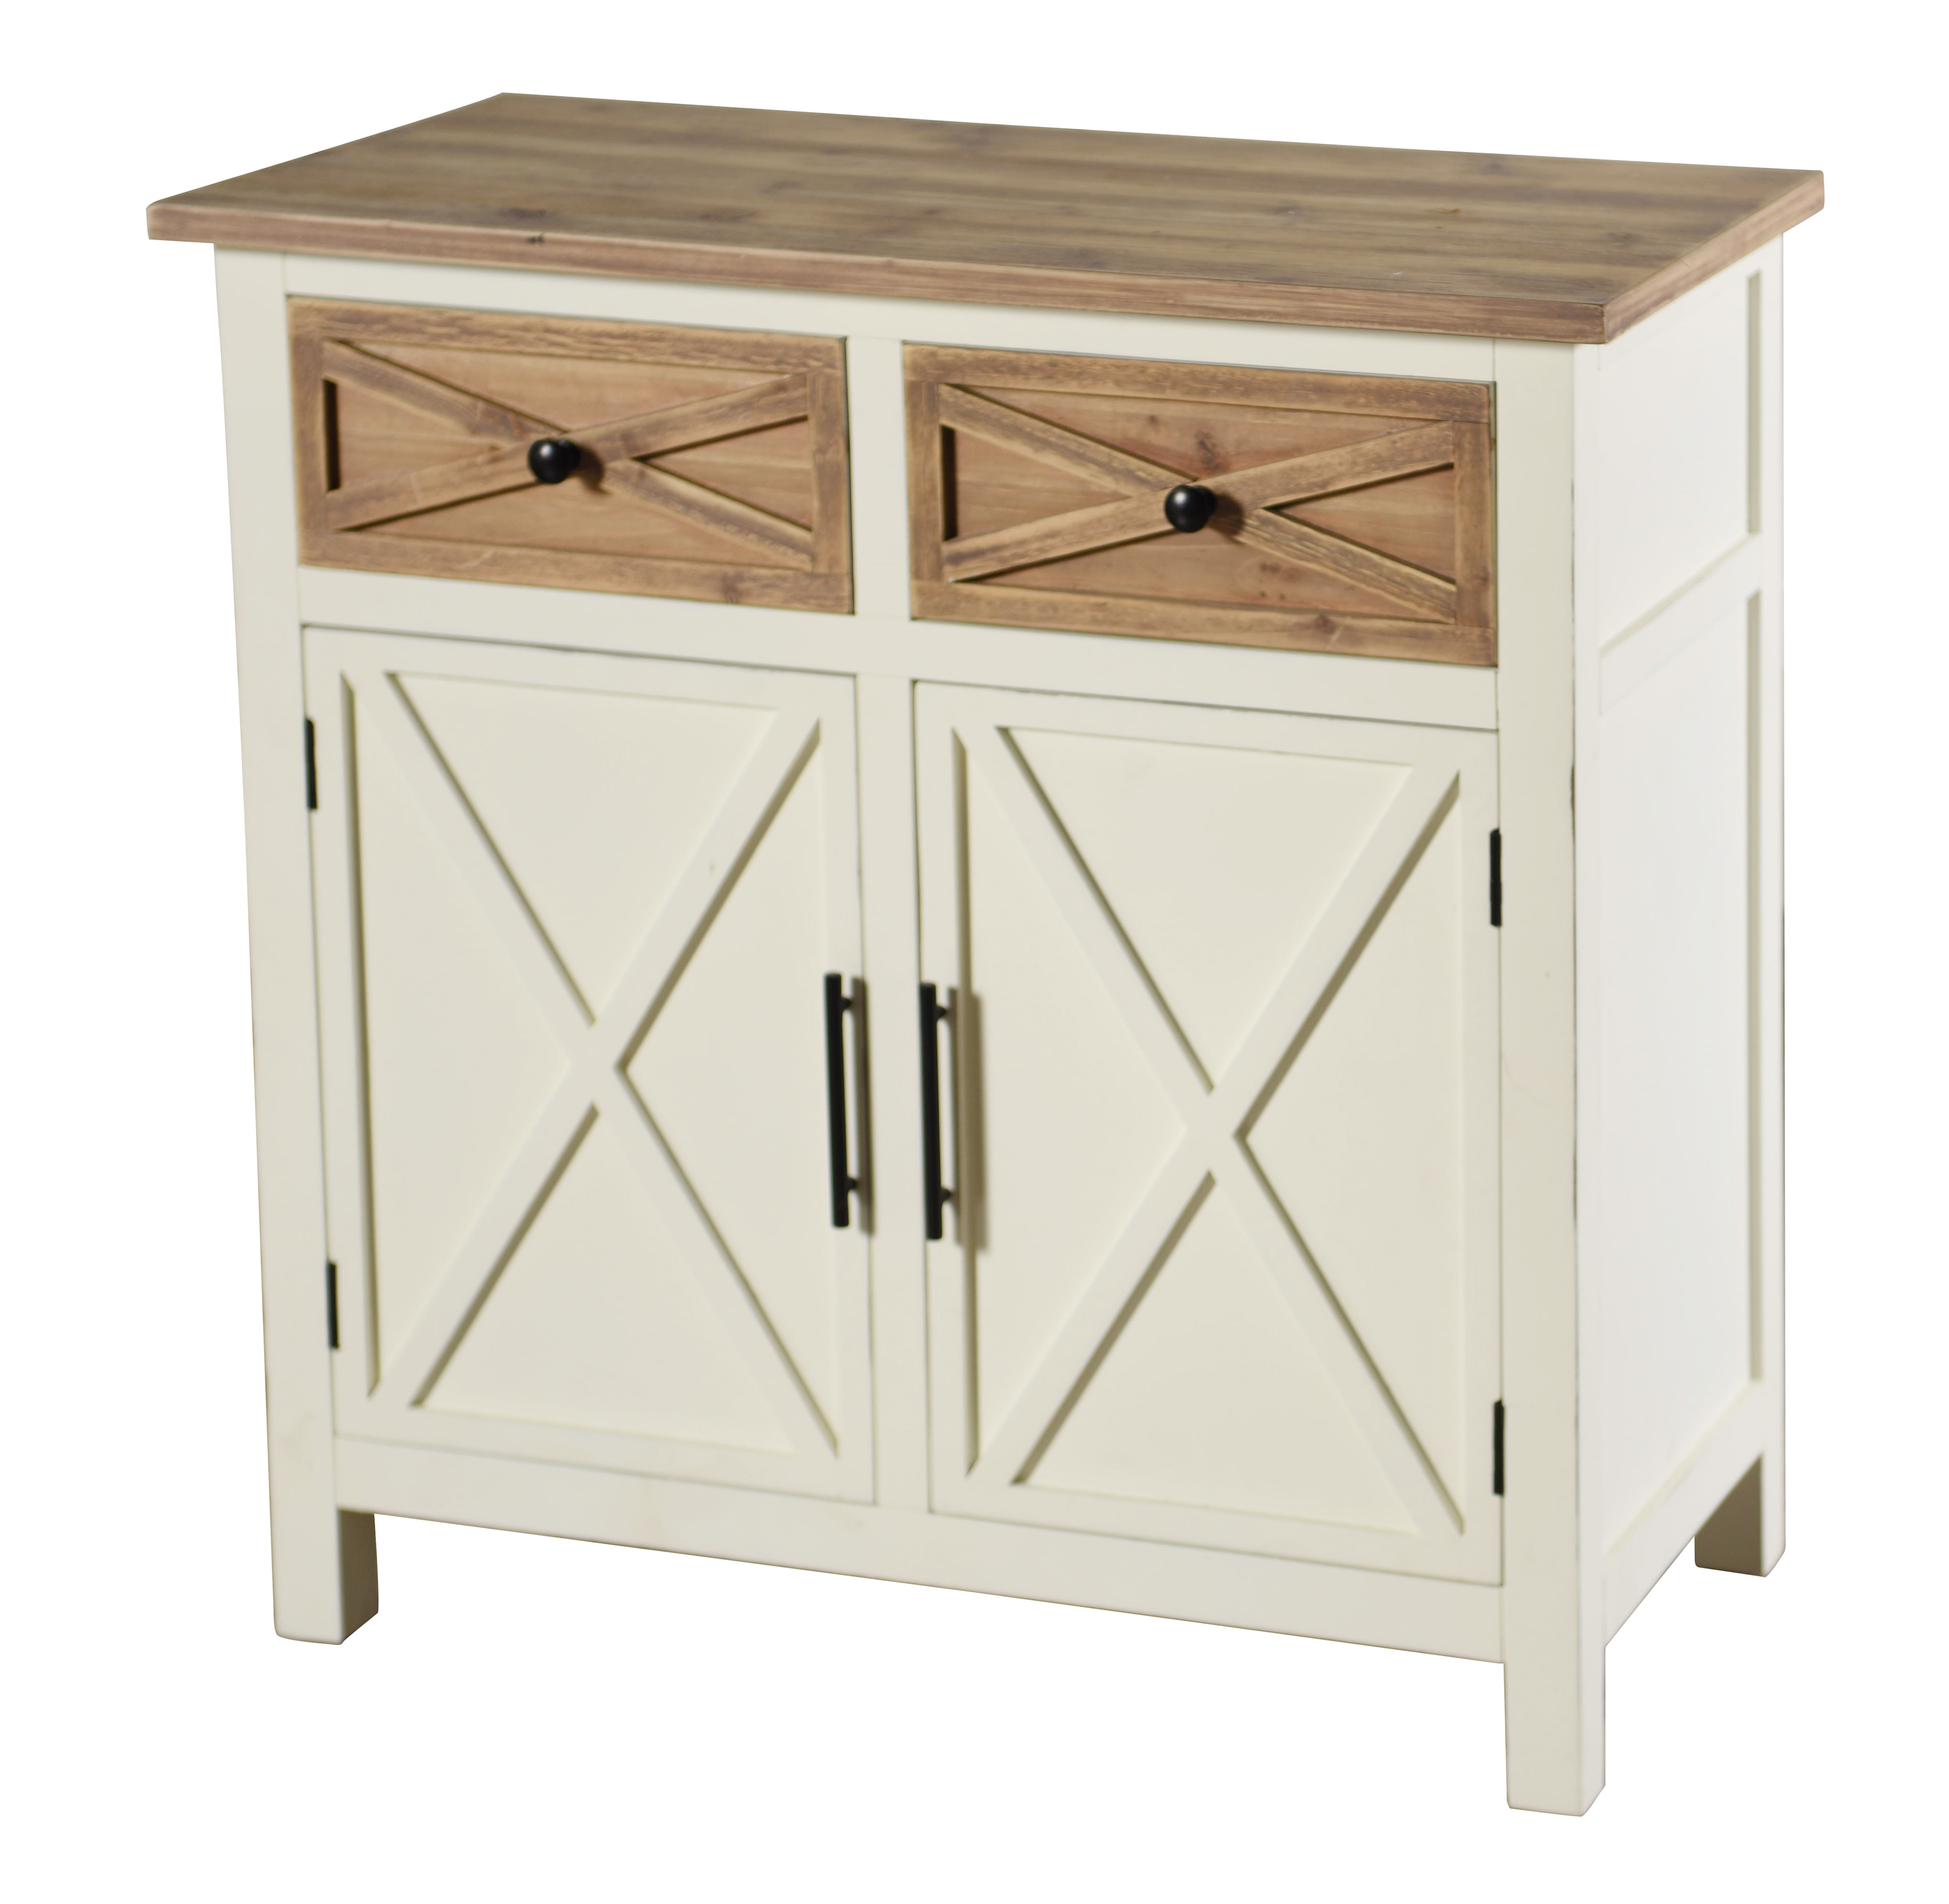 Quail Farm Two Door Cabinet - White and Natural